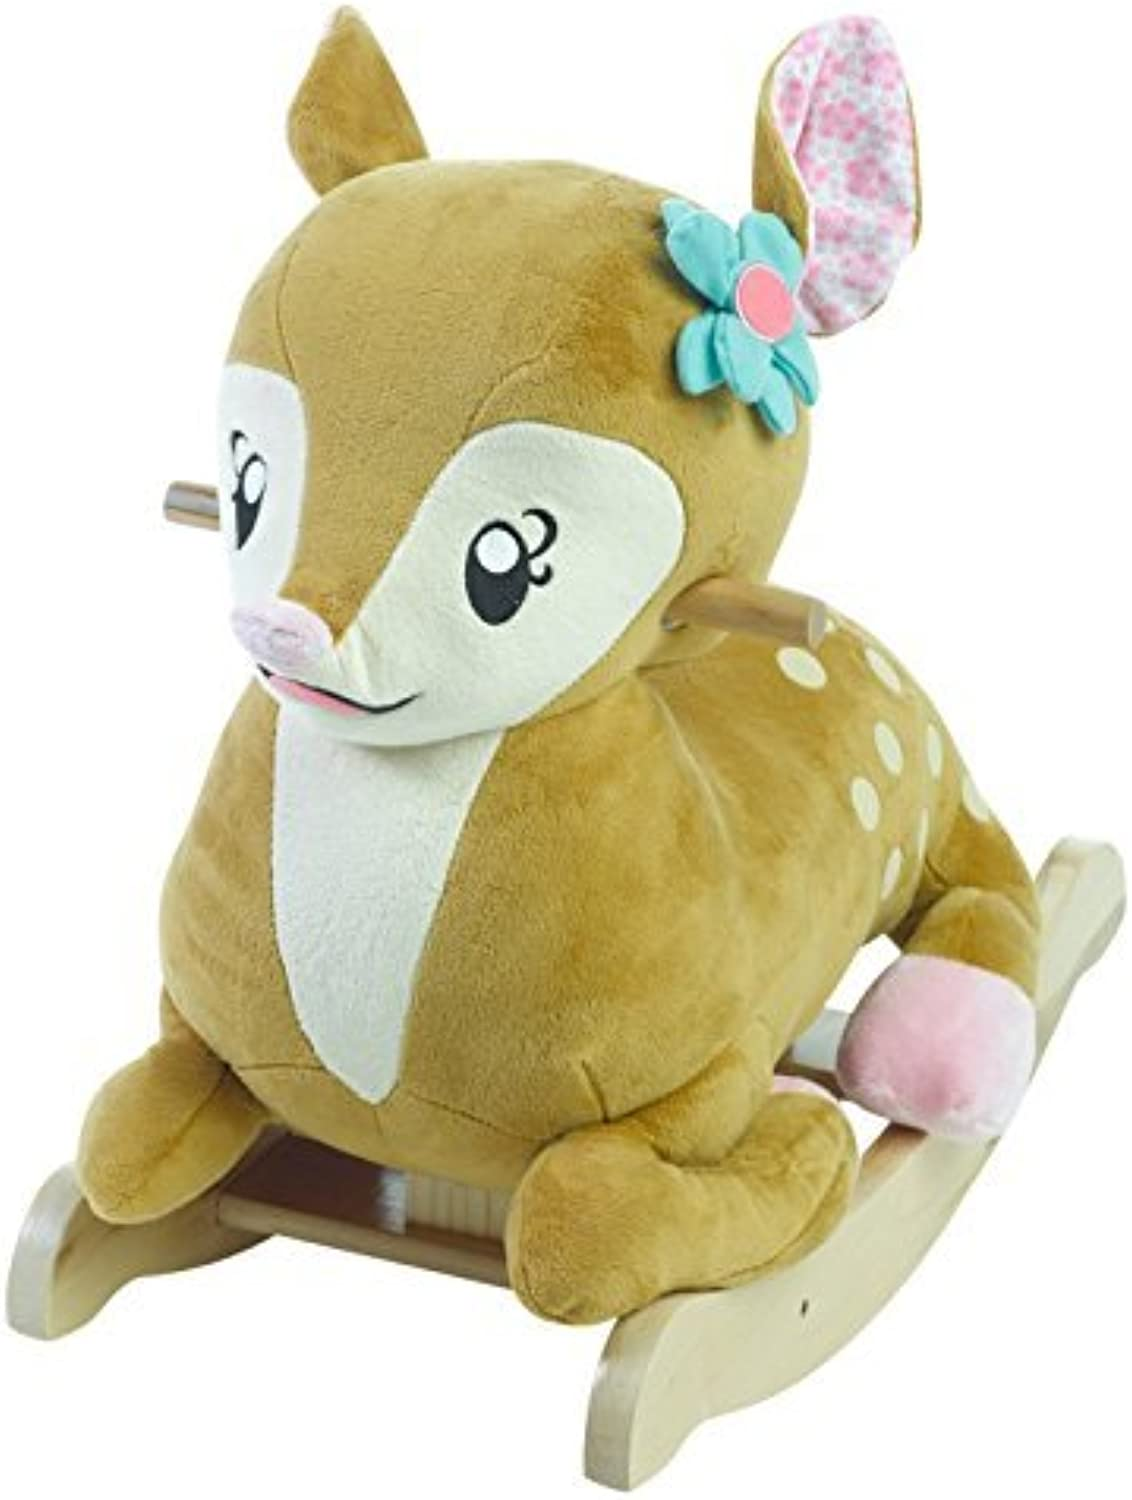 Rockabye Petals the Fawn Rocker Ride On by Rockabye